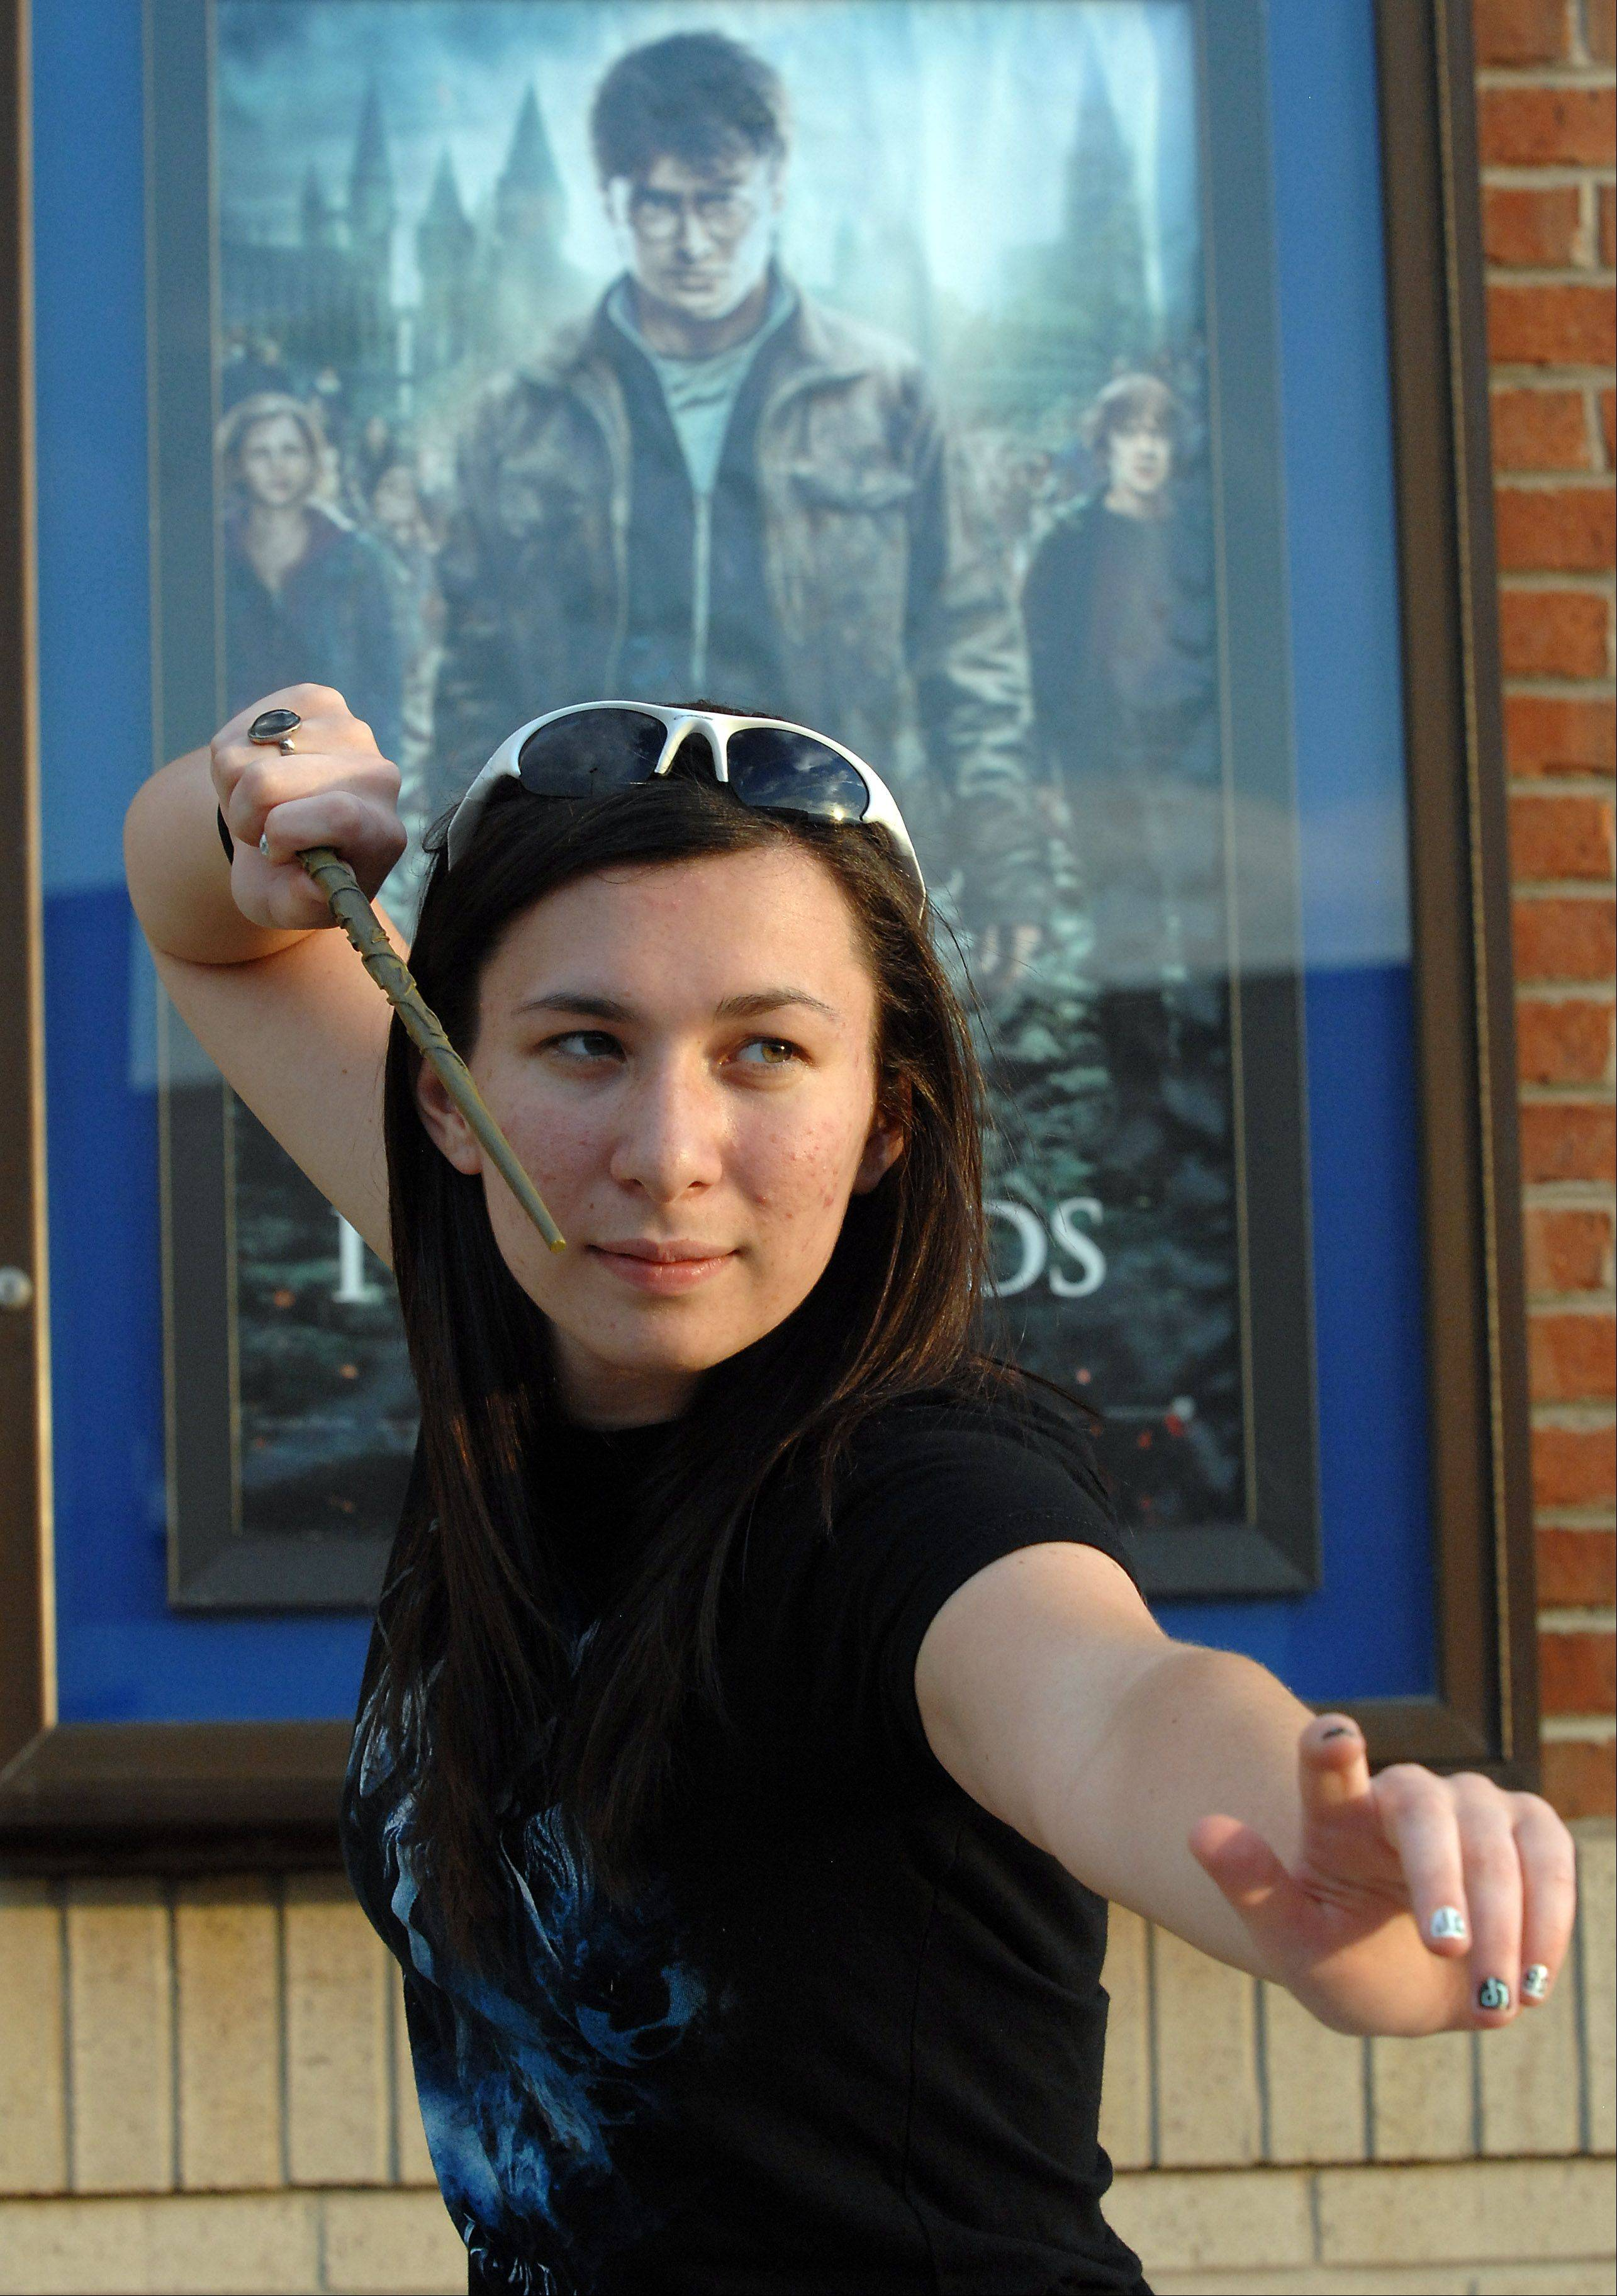 Erika Bauer,18, of Elk Grove Village gets ready to cast her magic spell with her Harry Potter wand getting ready to view the final installment of the Harry Potter series at the Elk Grove Cinema on Thursday night.